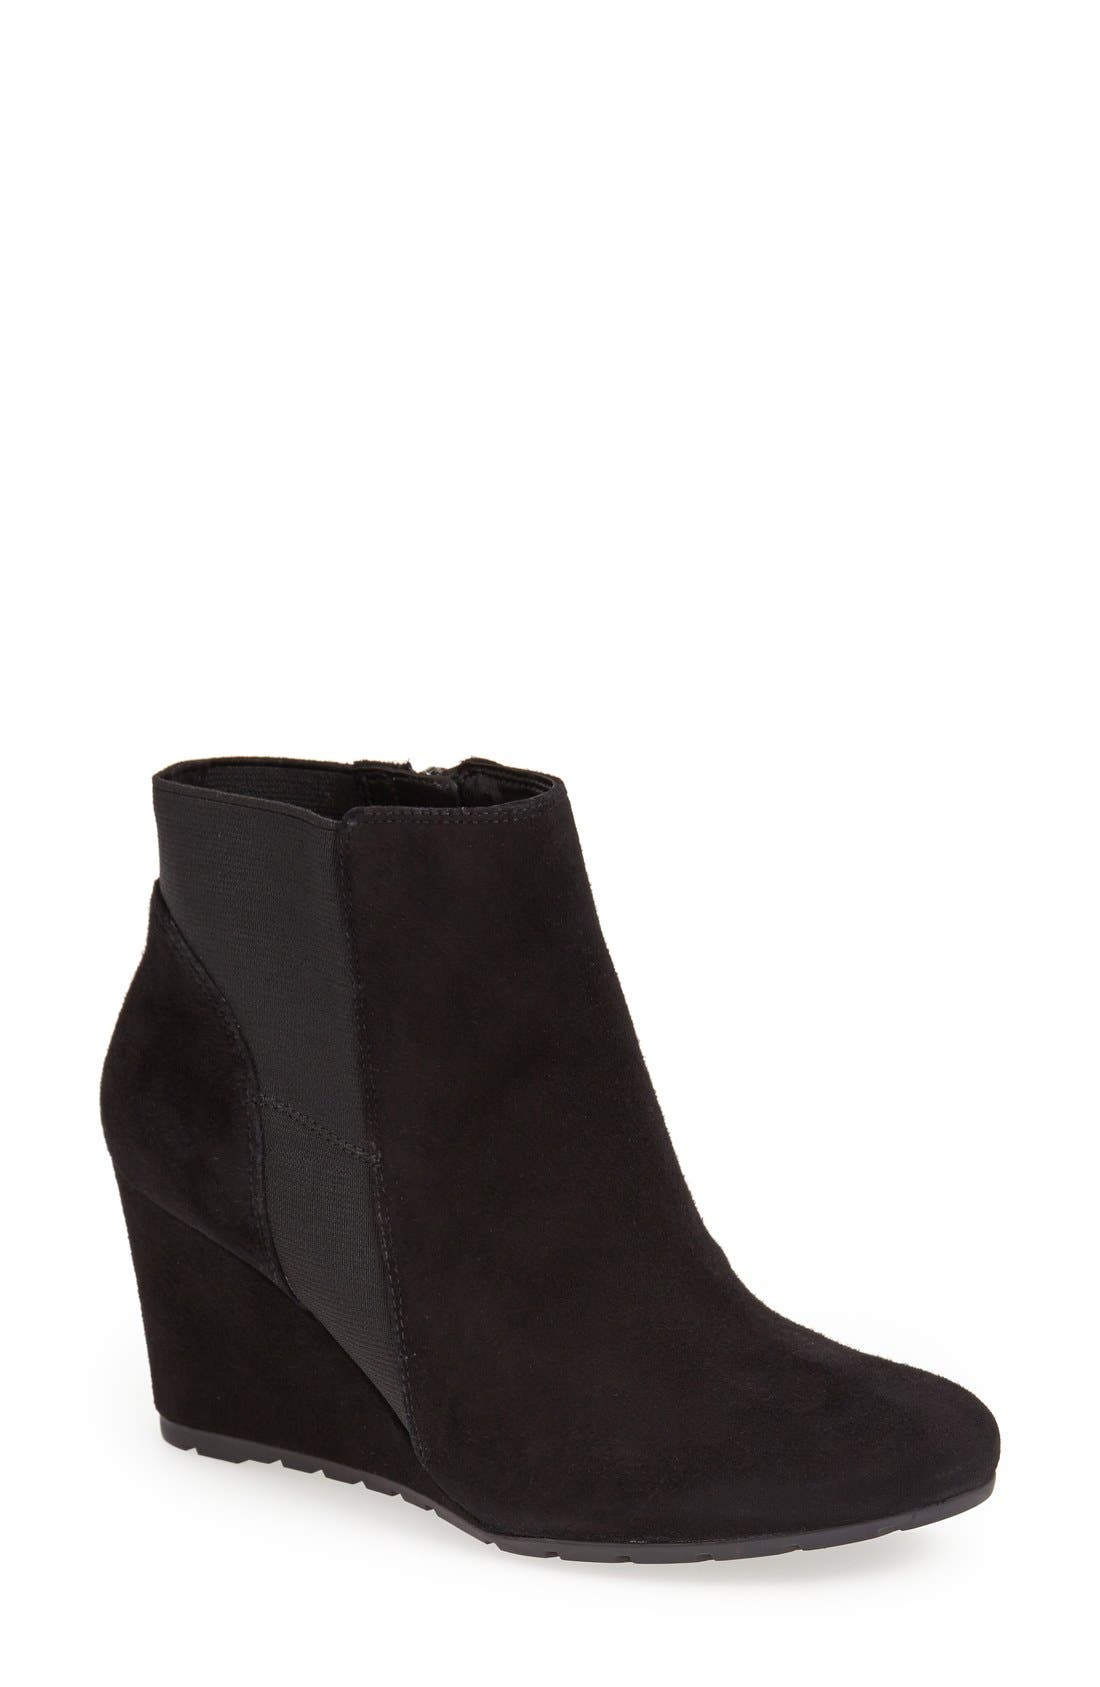 Alternate Image 1 Selected - Clarks® 'Rosepoint Bell' Suede Wedge Boot (Women)